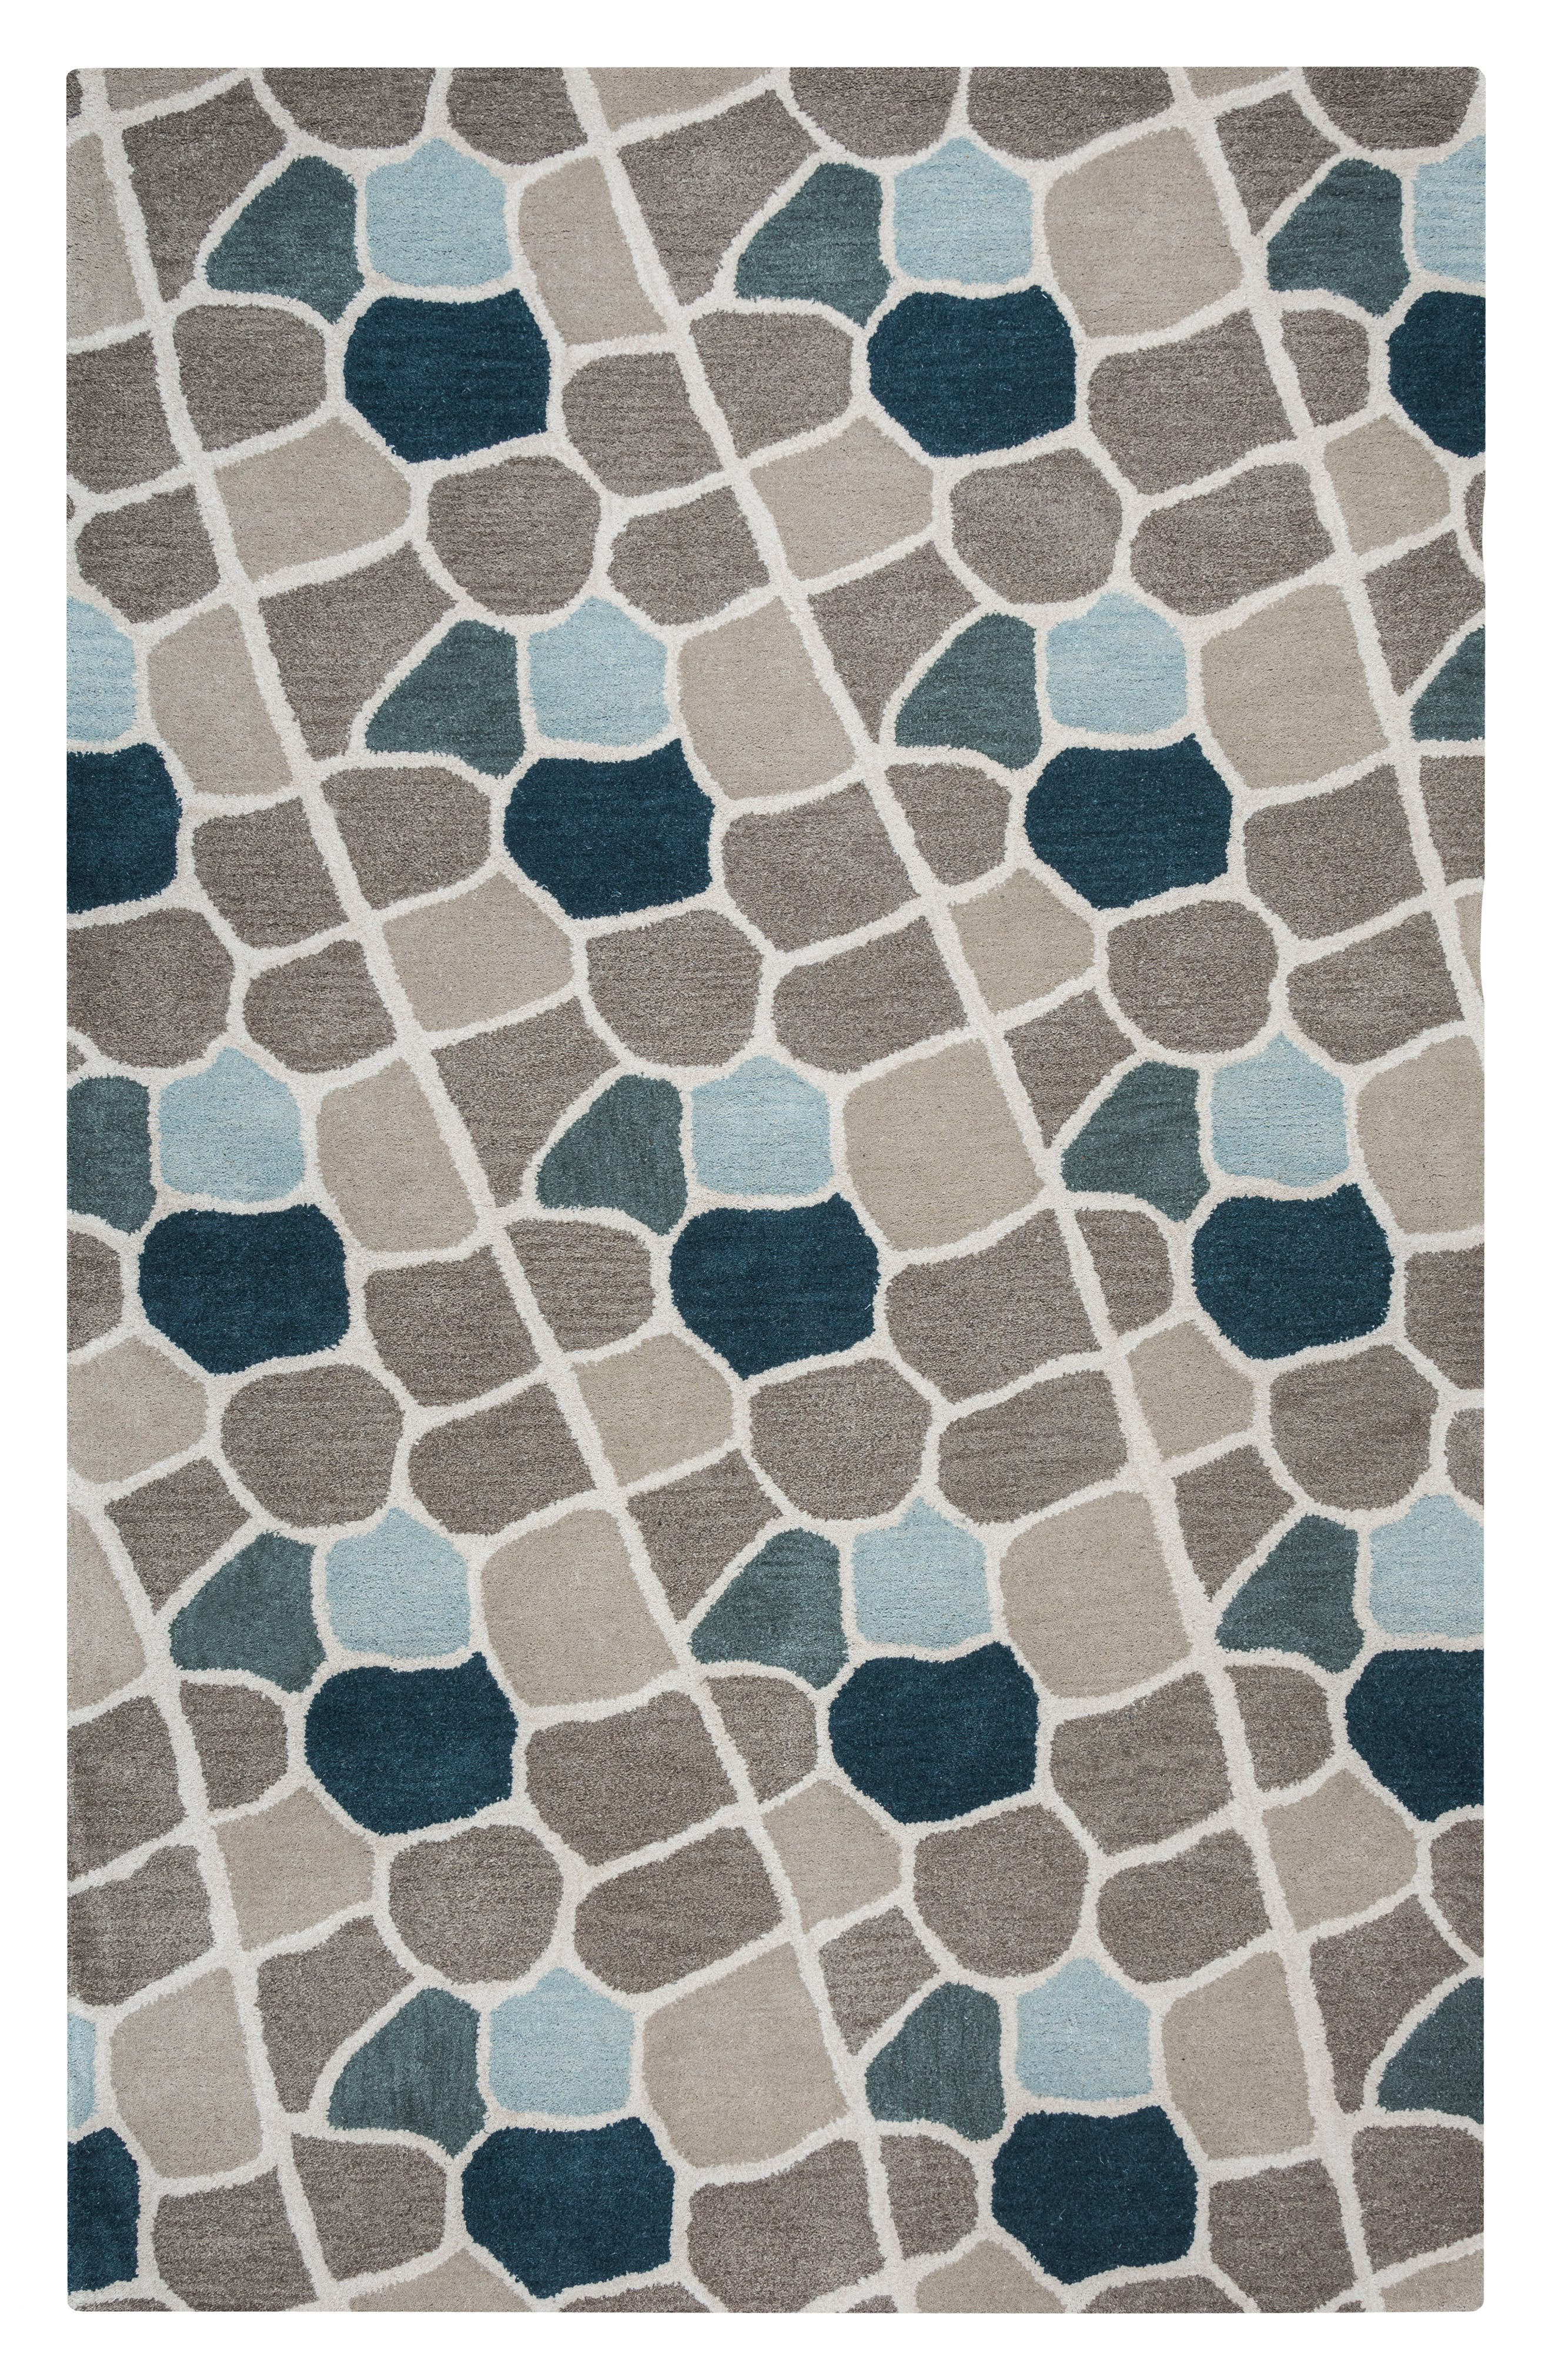 Alternate Image 1 Selected - Rizzy Home Cobble Geo Hand Tufted Wool Area Rug